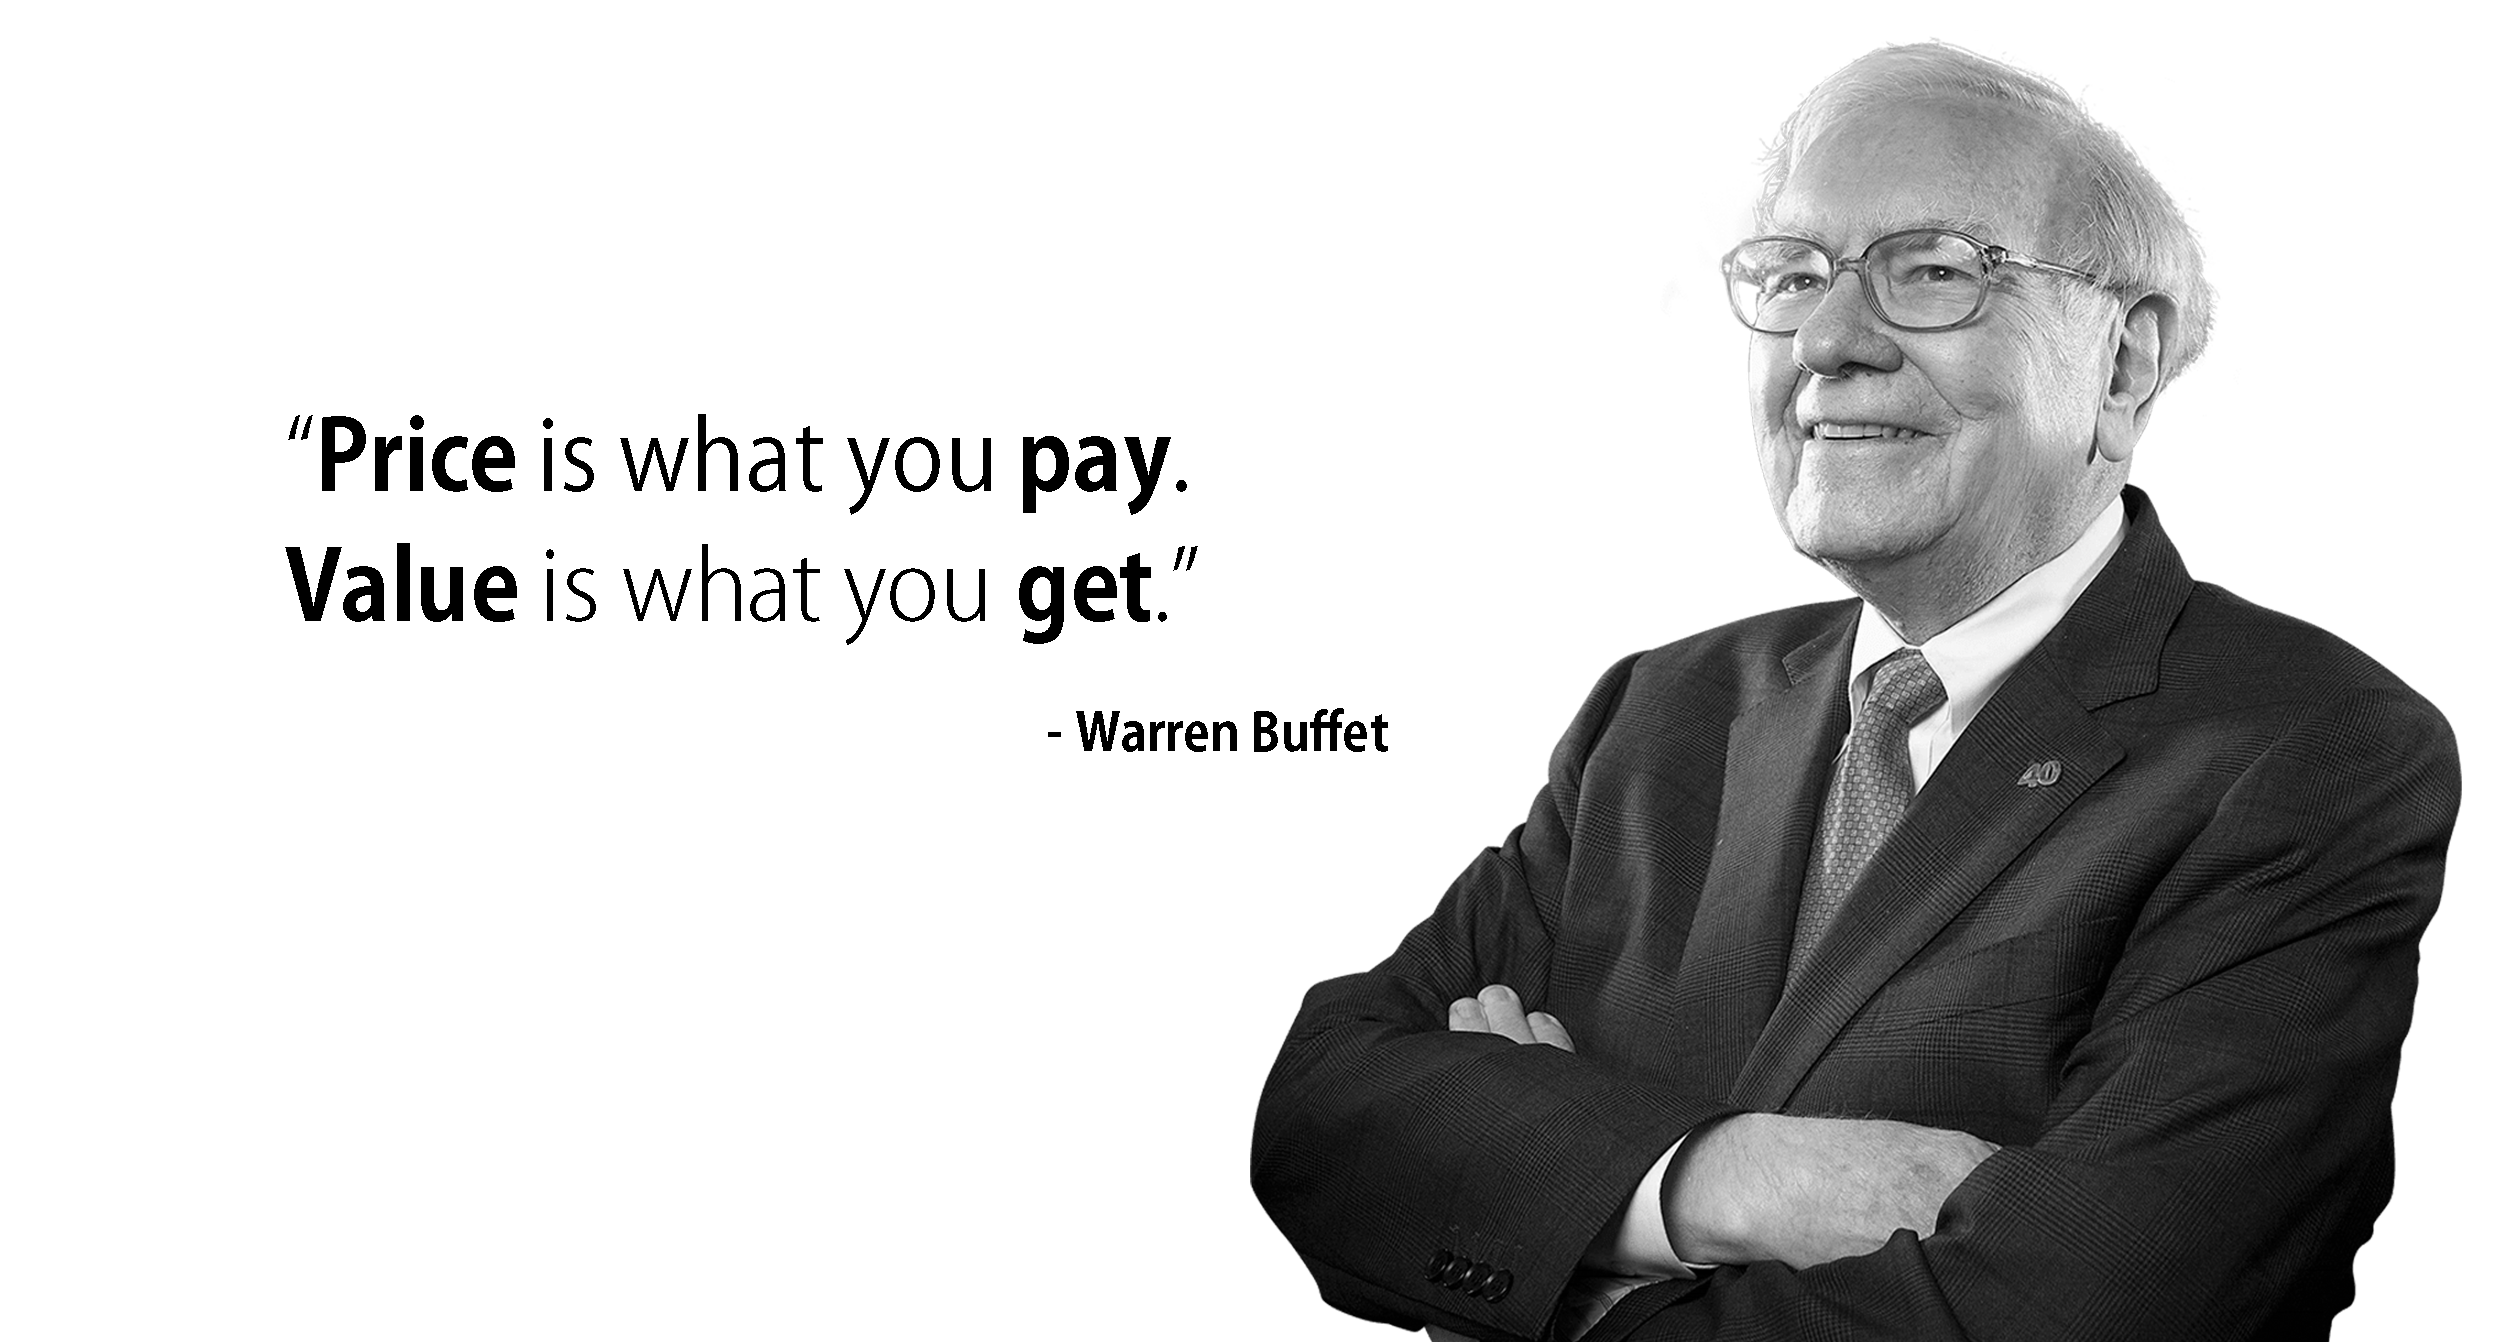 13 Value Warren Buffet.png